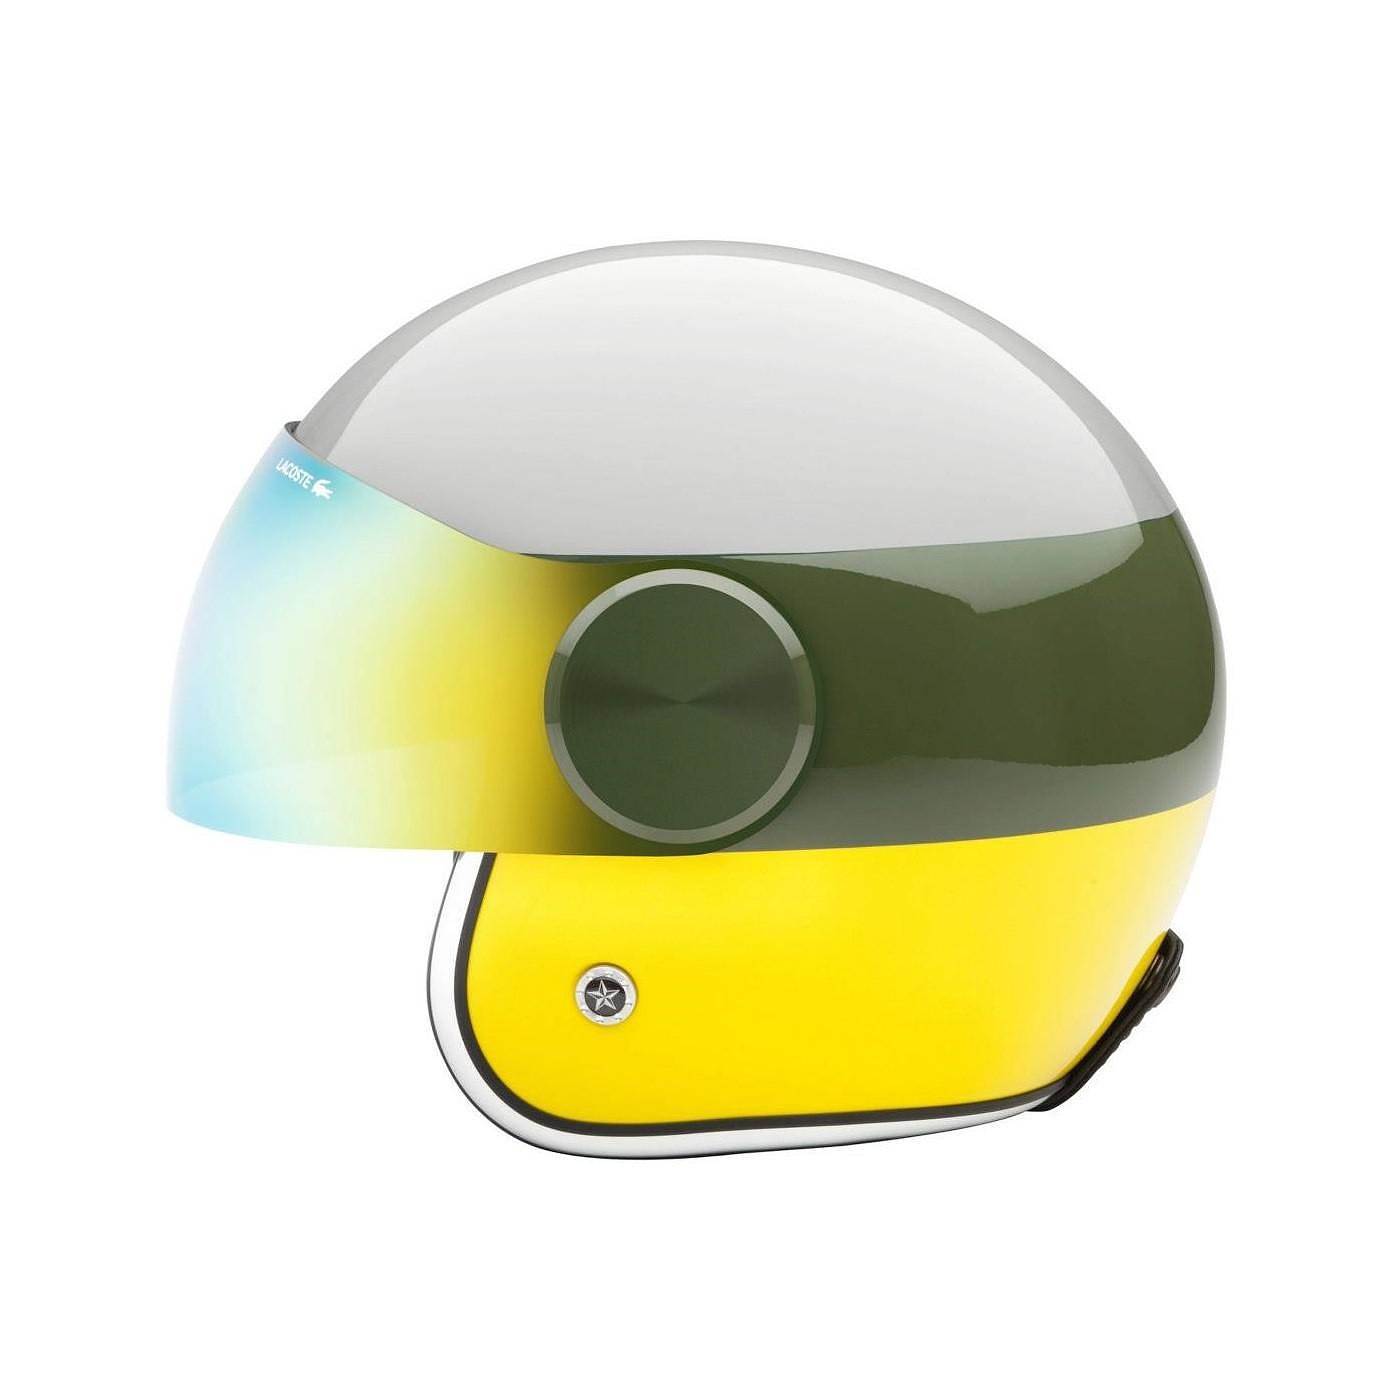 Lacoste Lab for Lacoste L!VE Helmet Collection.